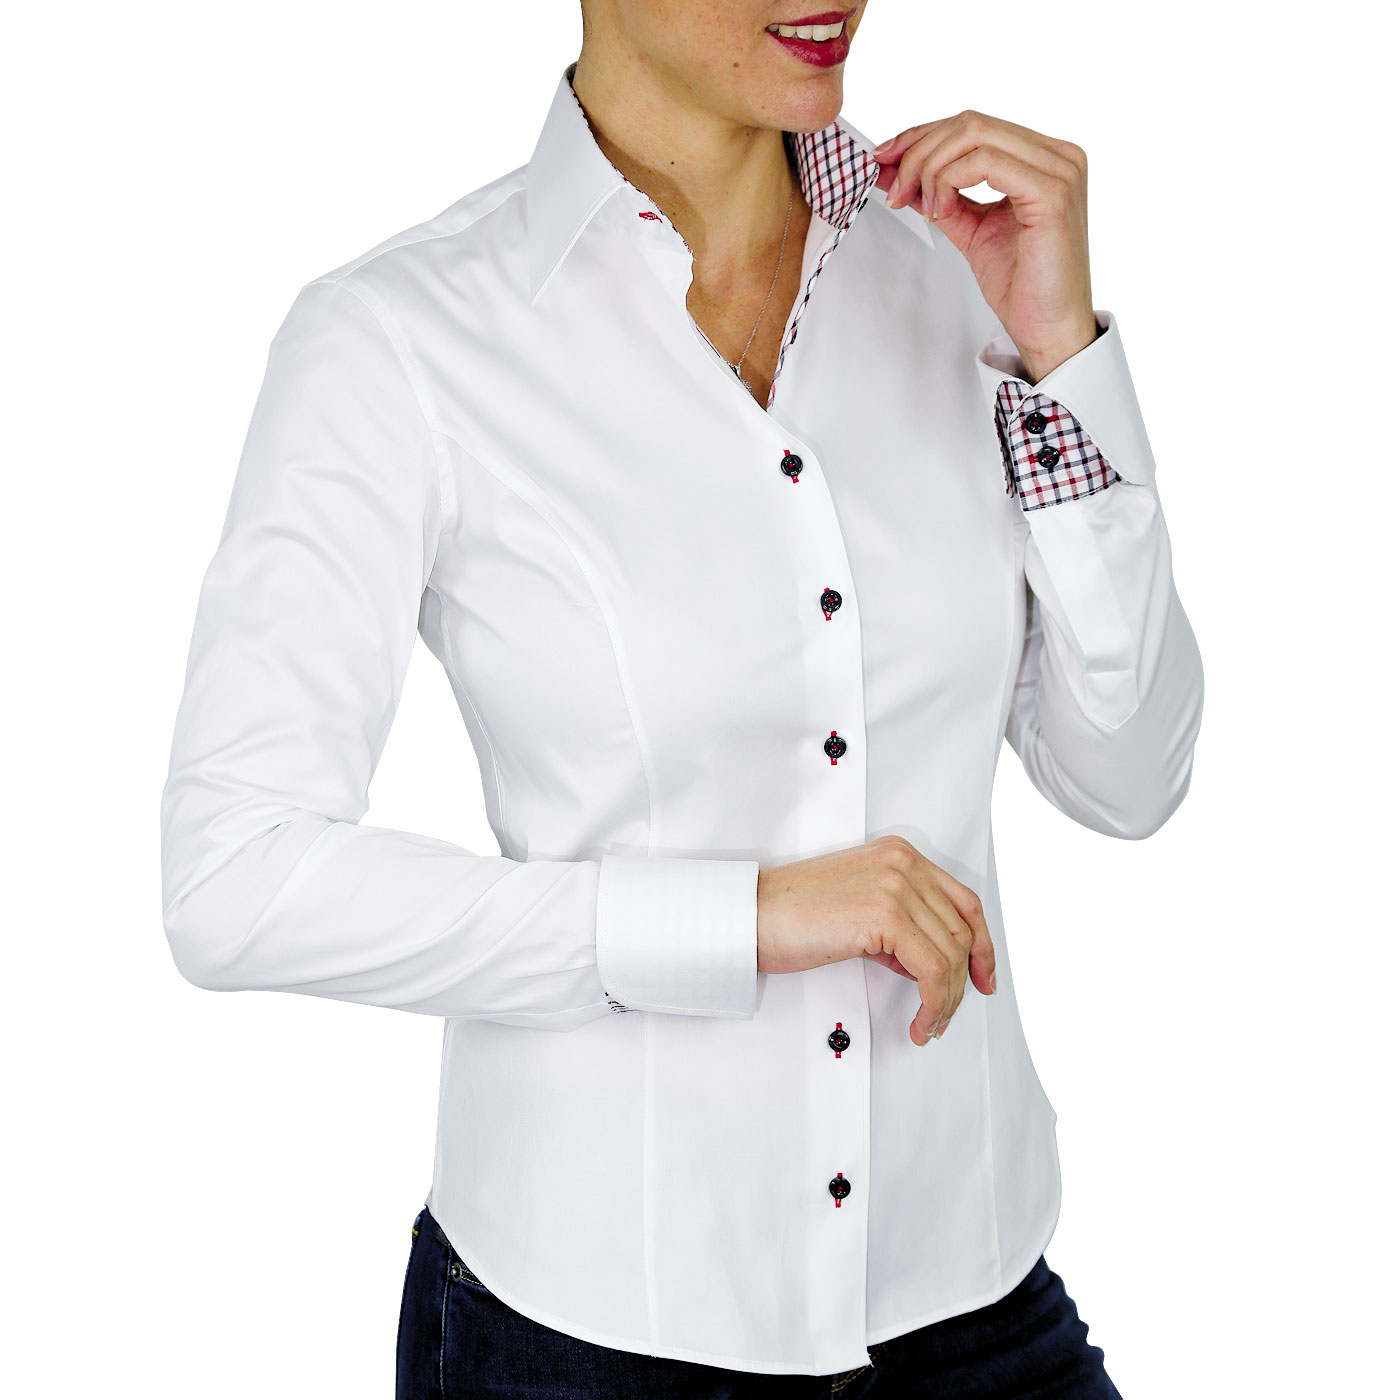 Casual shirt for woman